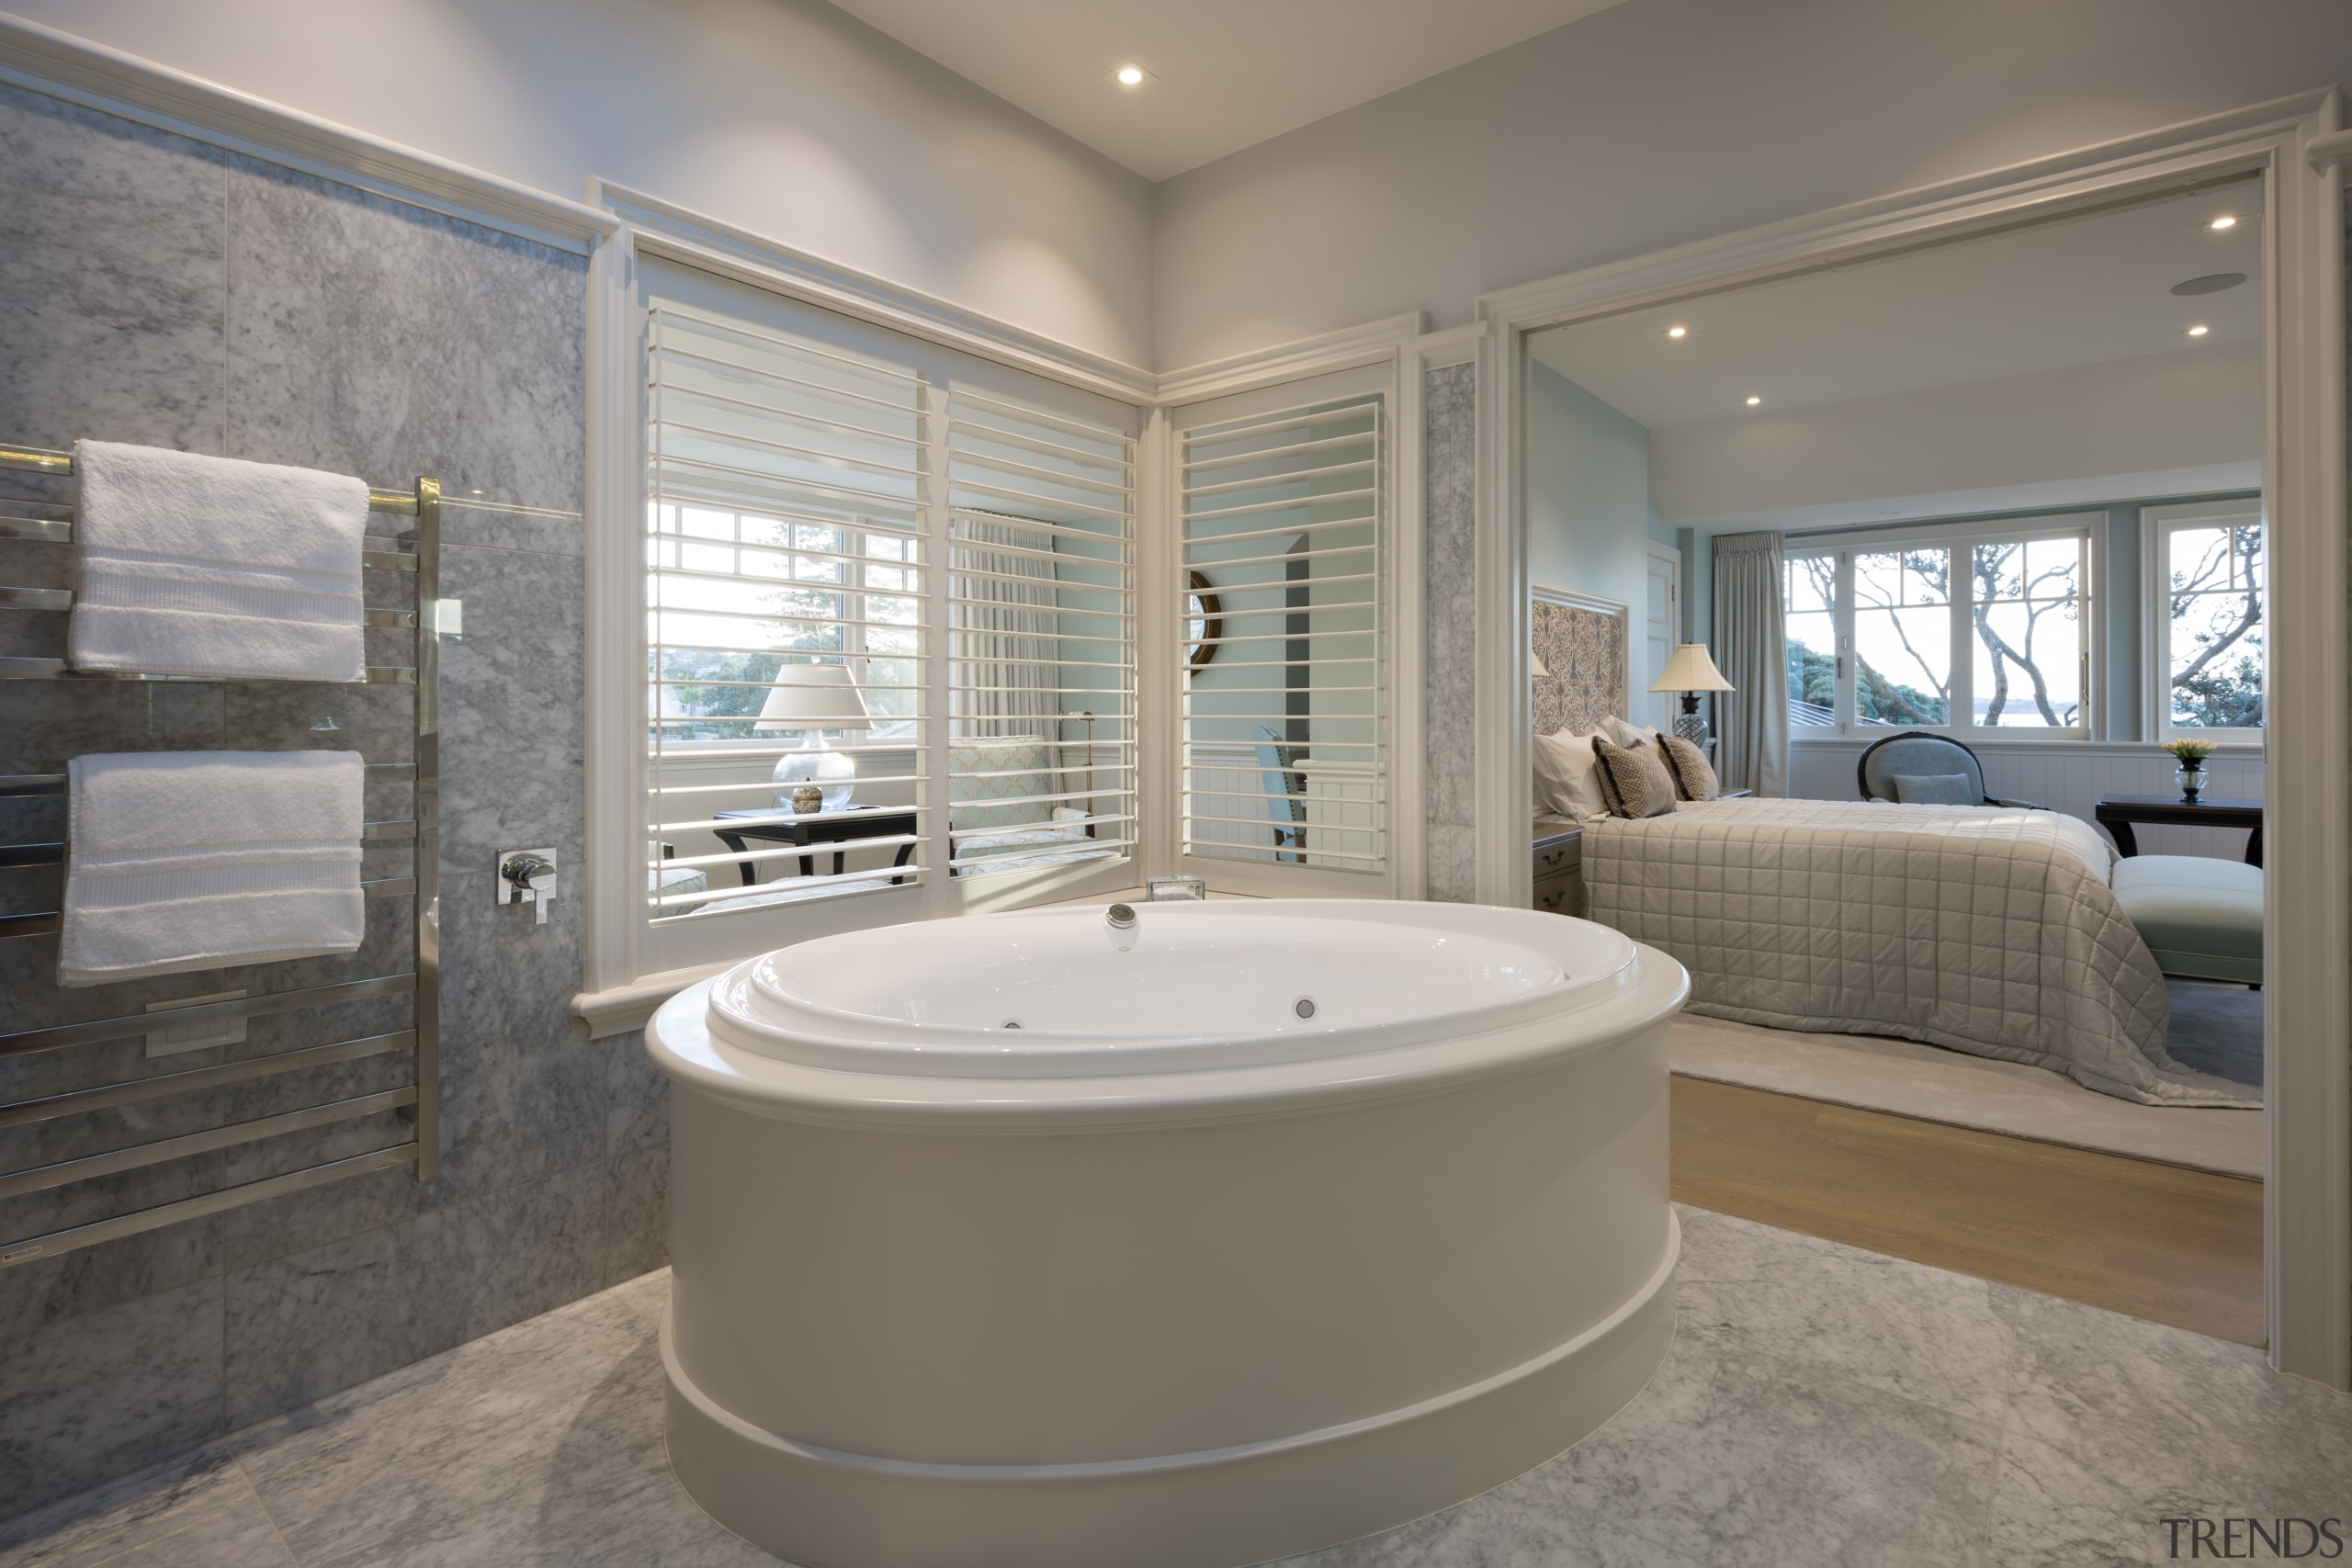 Campbells Bay - bathroom | bathtub | estate bathroom, bathtub, estate, floor, home, interior design, real estate, room, window, gray